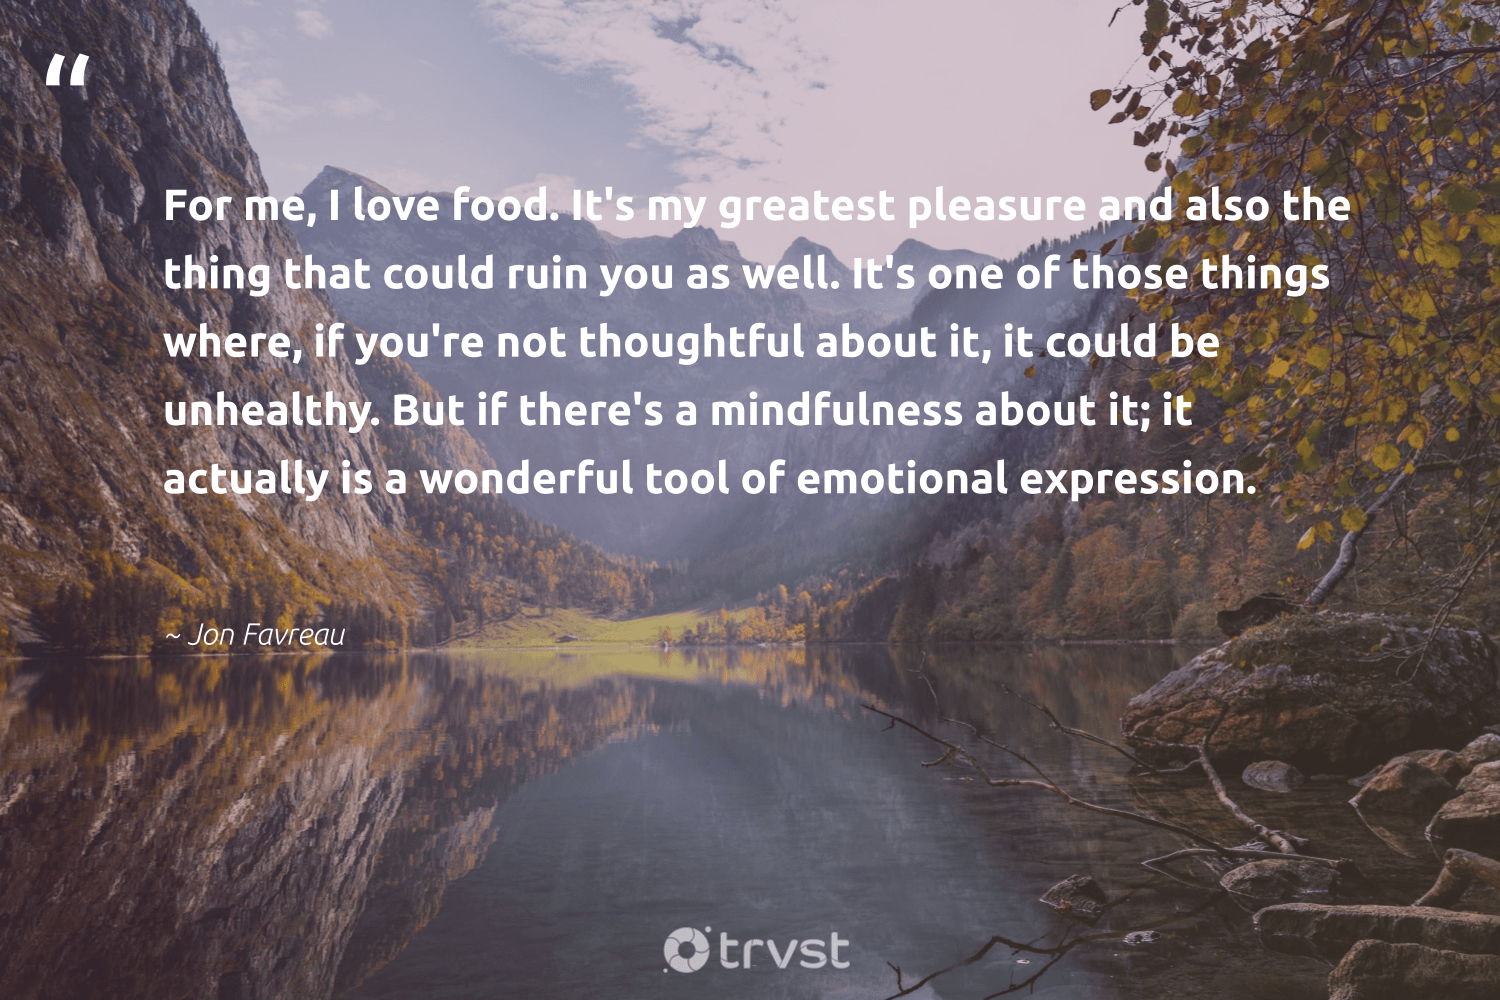 """""""For me, I love food. It's my greatest pleasure and also the thing that could ruin you as well. It's one of those things where, if you're not thoughtful about it, it could be unhealthy. But if there's a mindfulness about it; it actually is a wonderful tool of emotional expression.""""  - Jon Favreau #trvst #quotes #love #food #mindfulness #hunger #mentalheatlh #sustainablefutures #dogood #hungry #mindful #equalrights"""